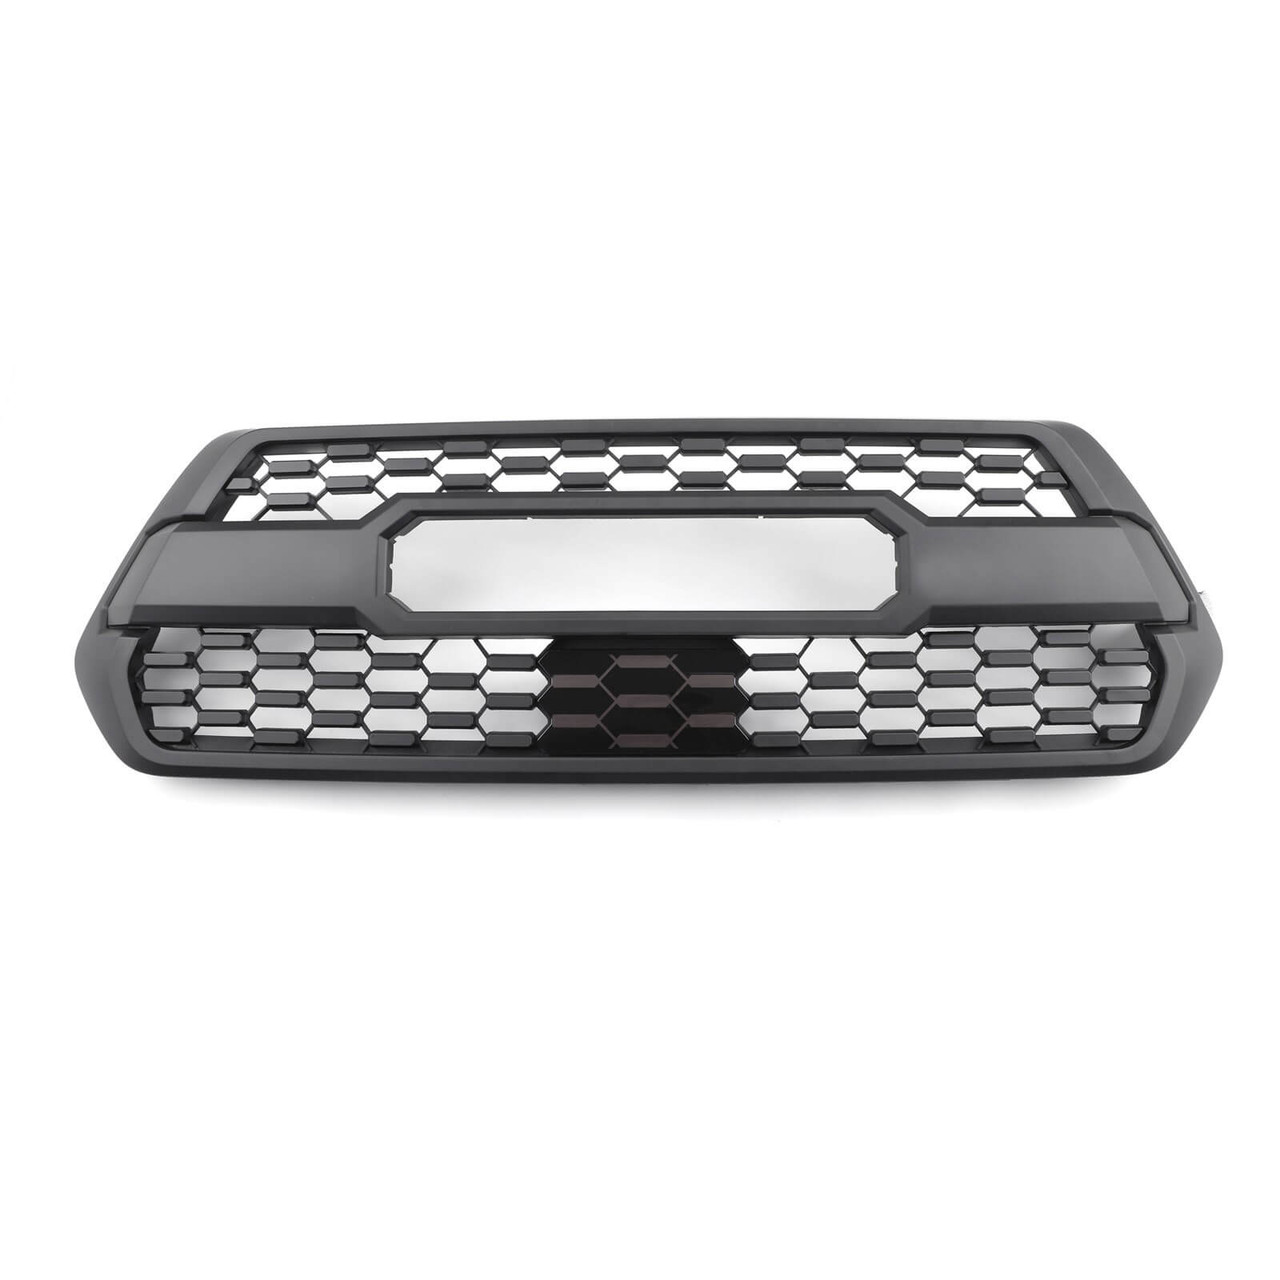 TRD Pro Grille with ACC DRCC Garnish Sensor Cover for Tacoma 2017-2019